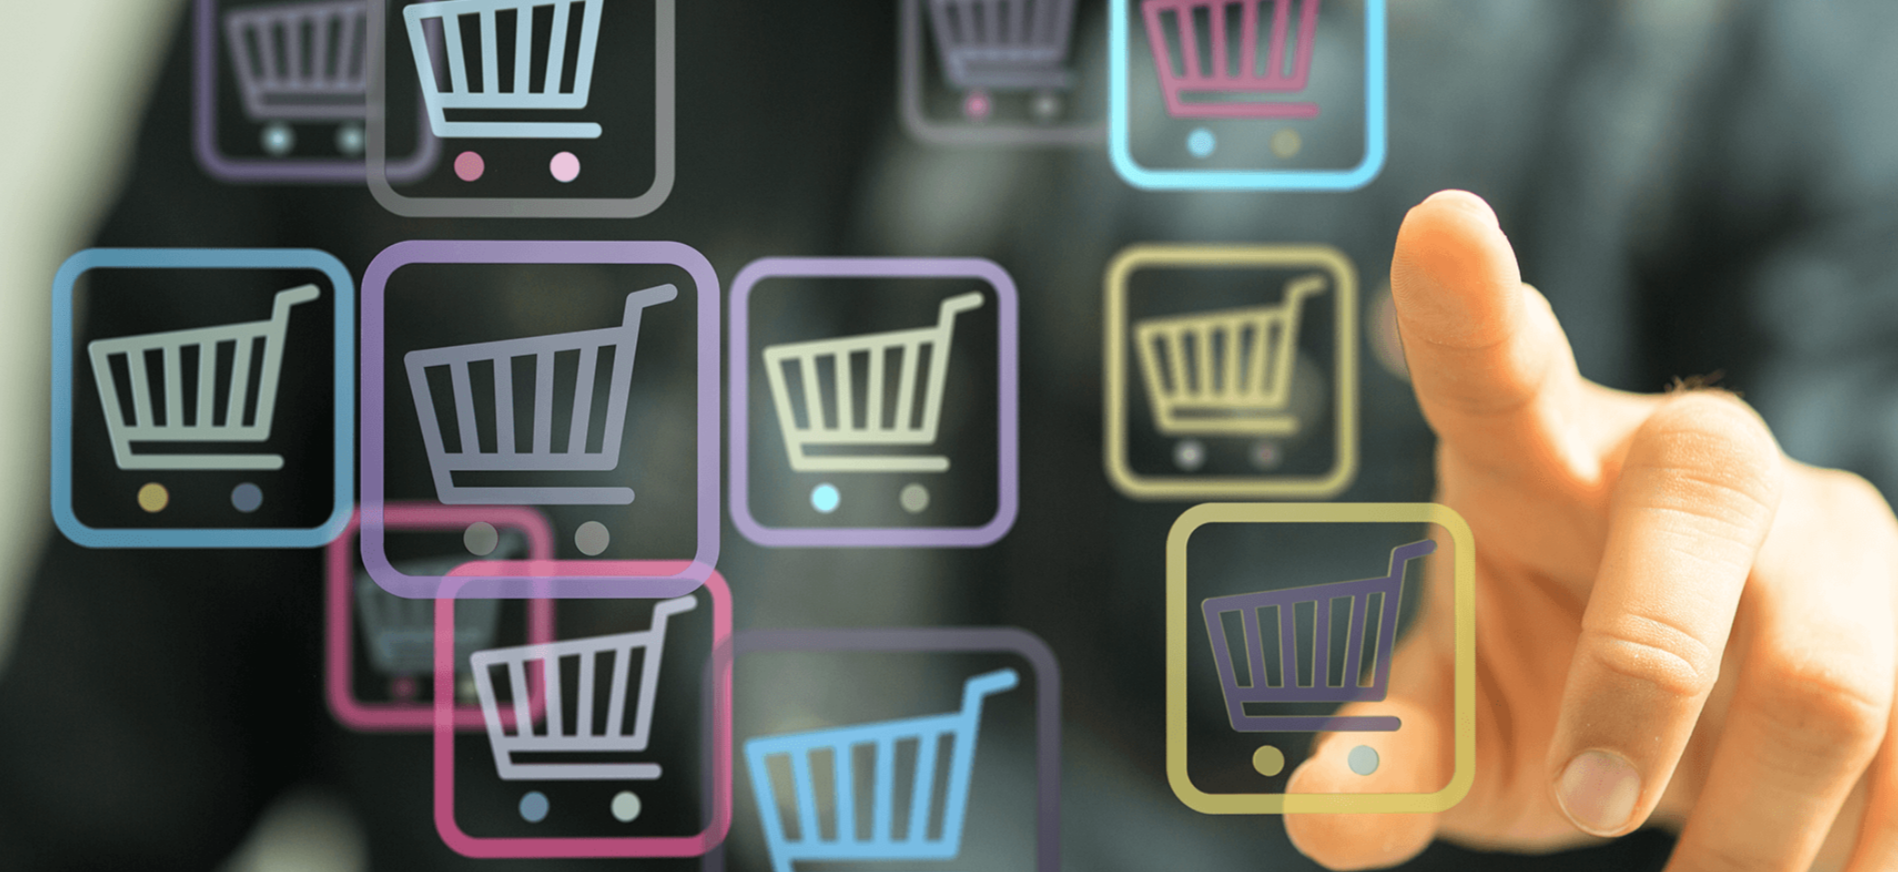 Top 5 Ecommerce challenges and tips to overcome in 2021